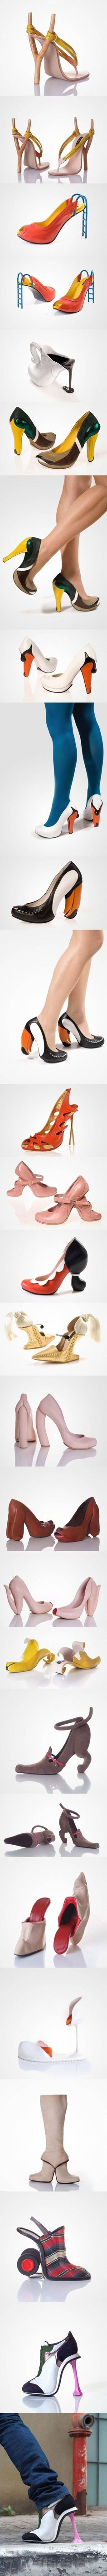 Hilarious high heels :)